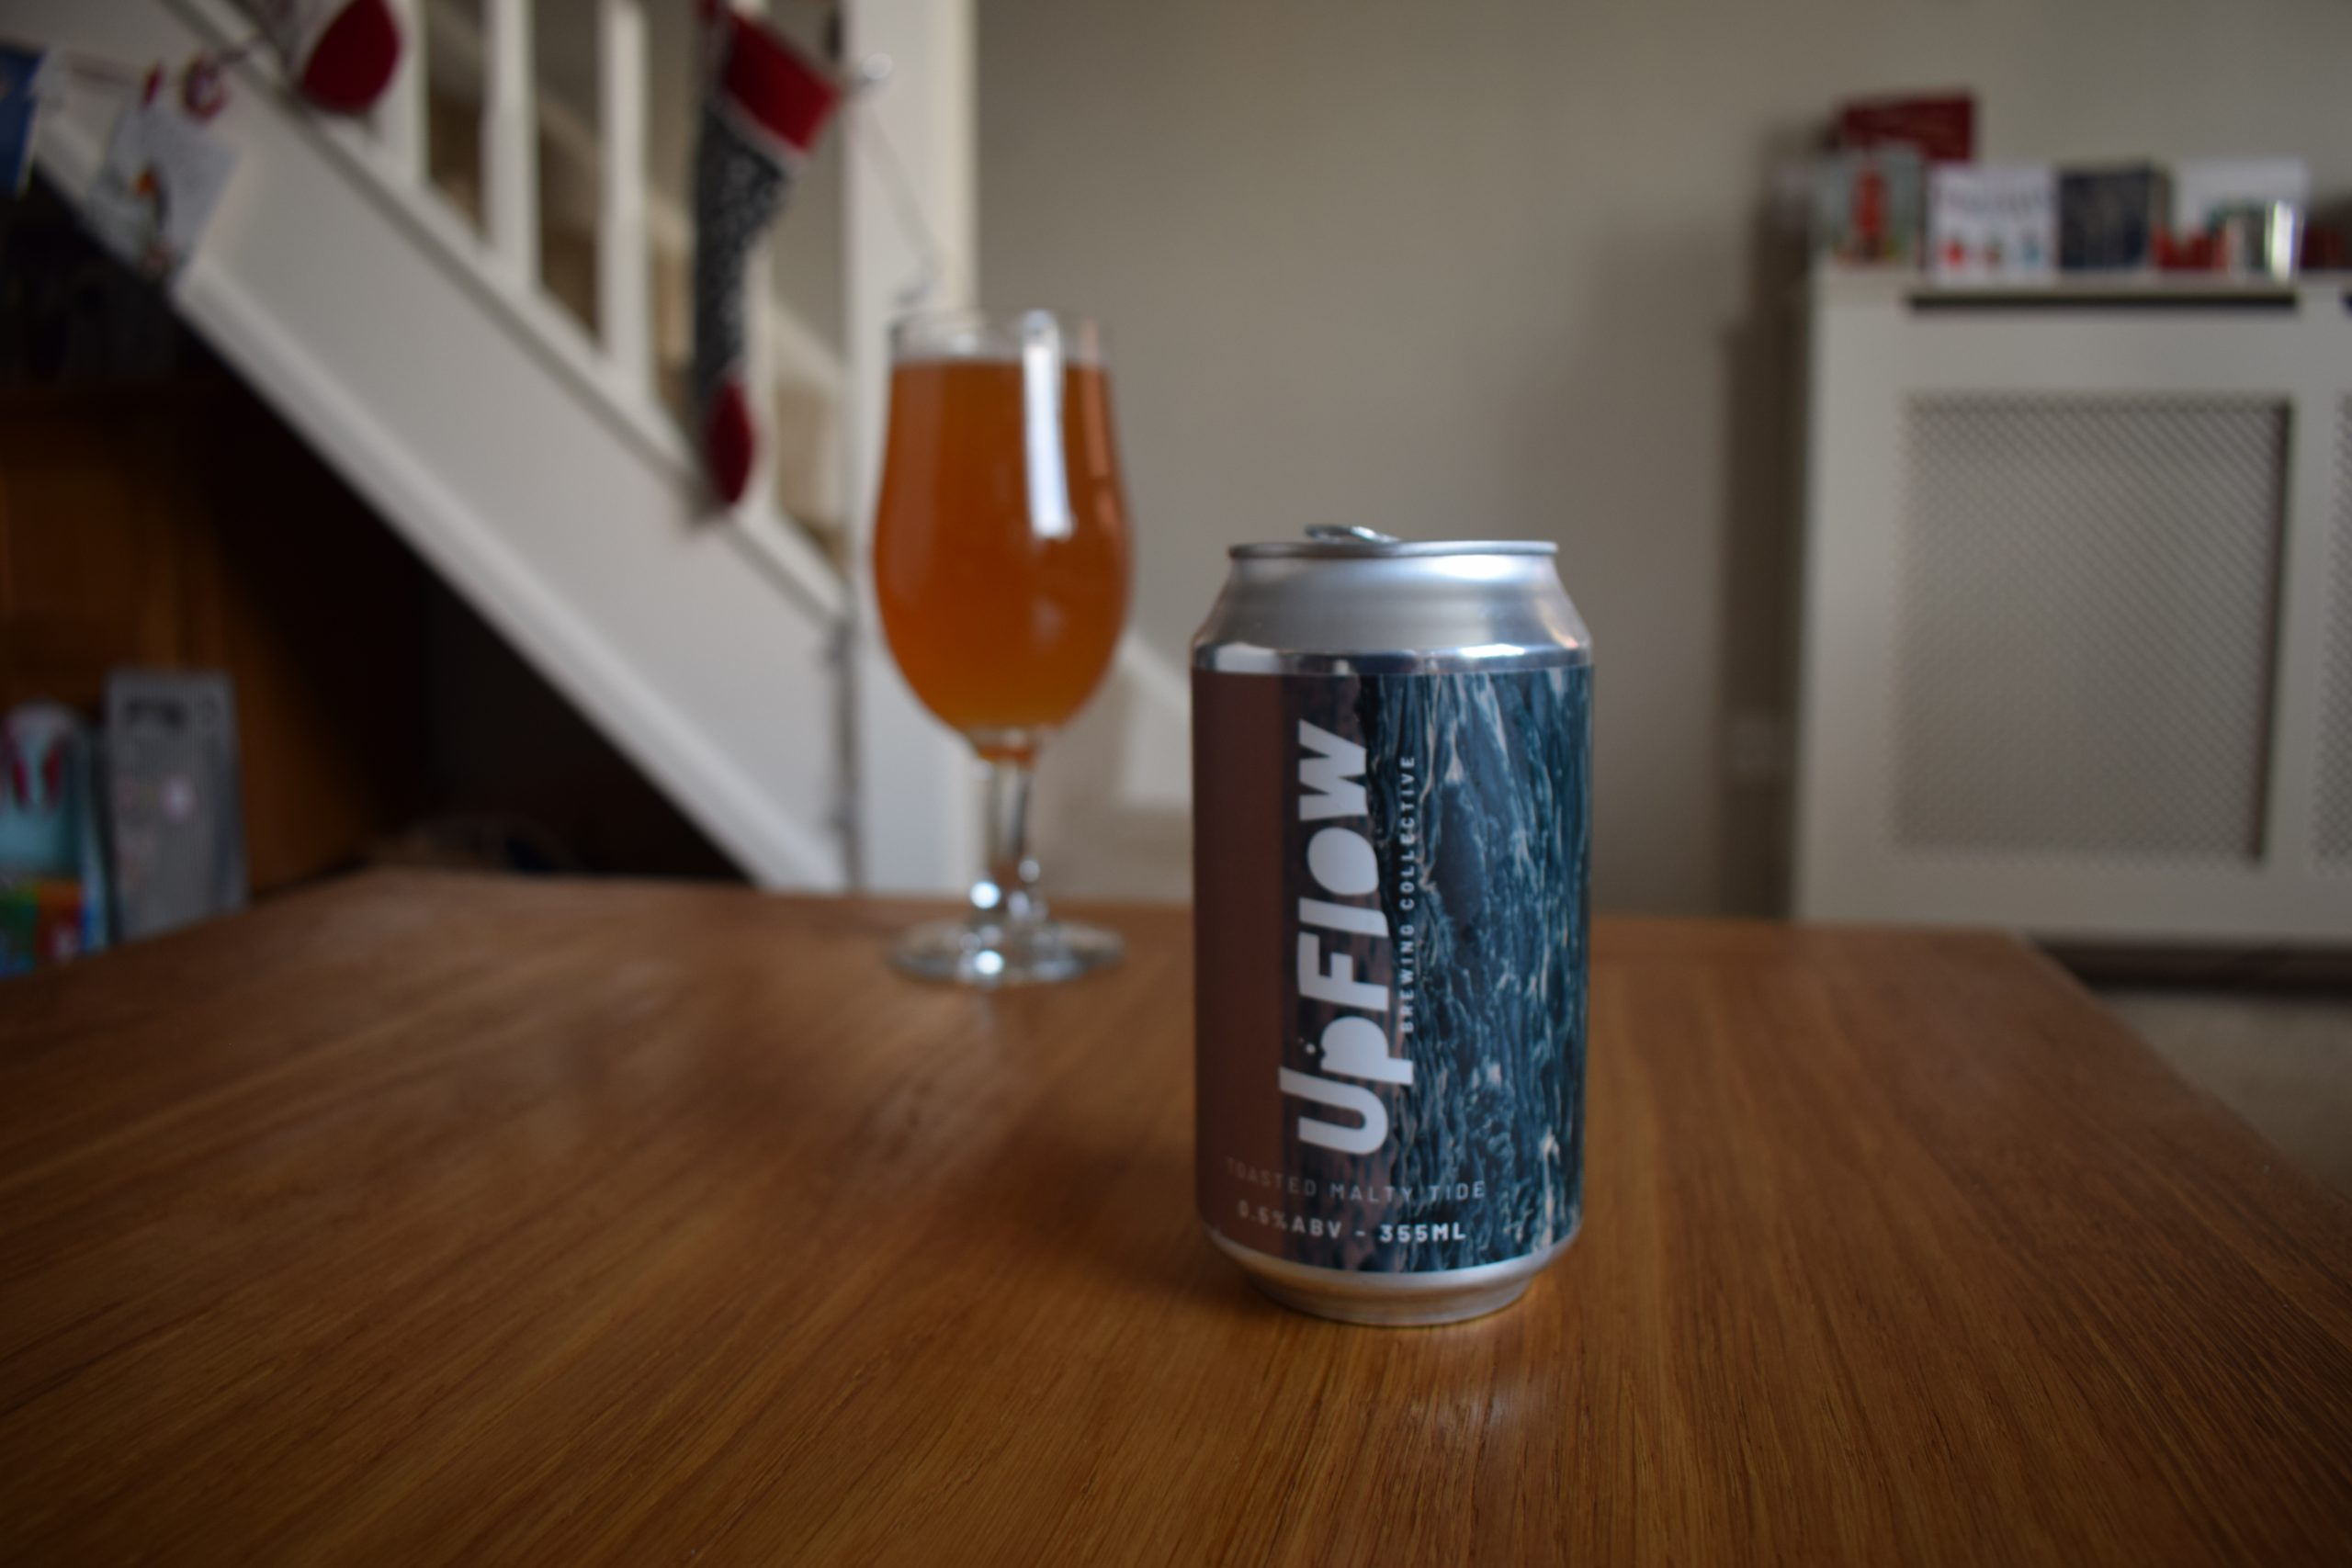 """Malty Tide"" (0.5%) by Upflow"